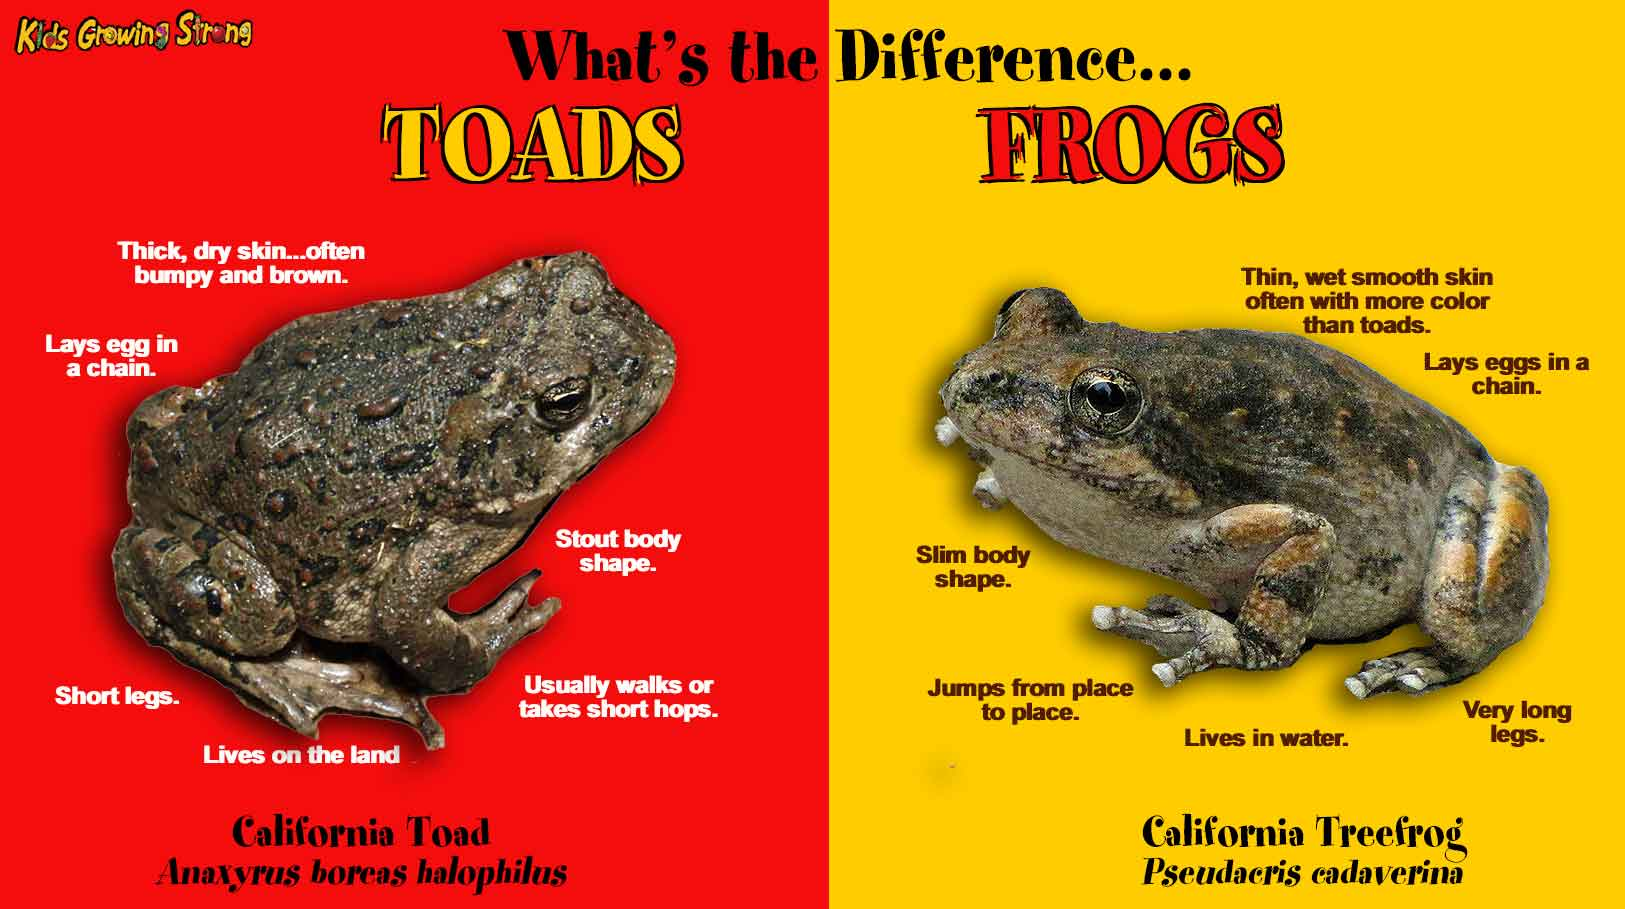 Toads Kids Growing Strong